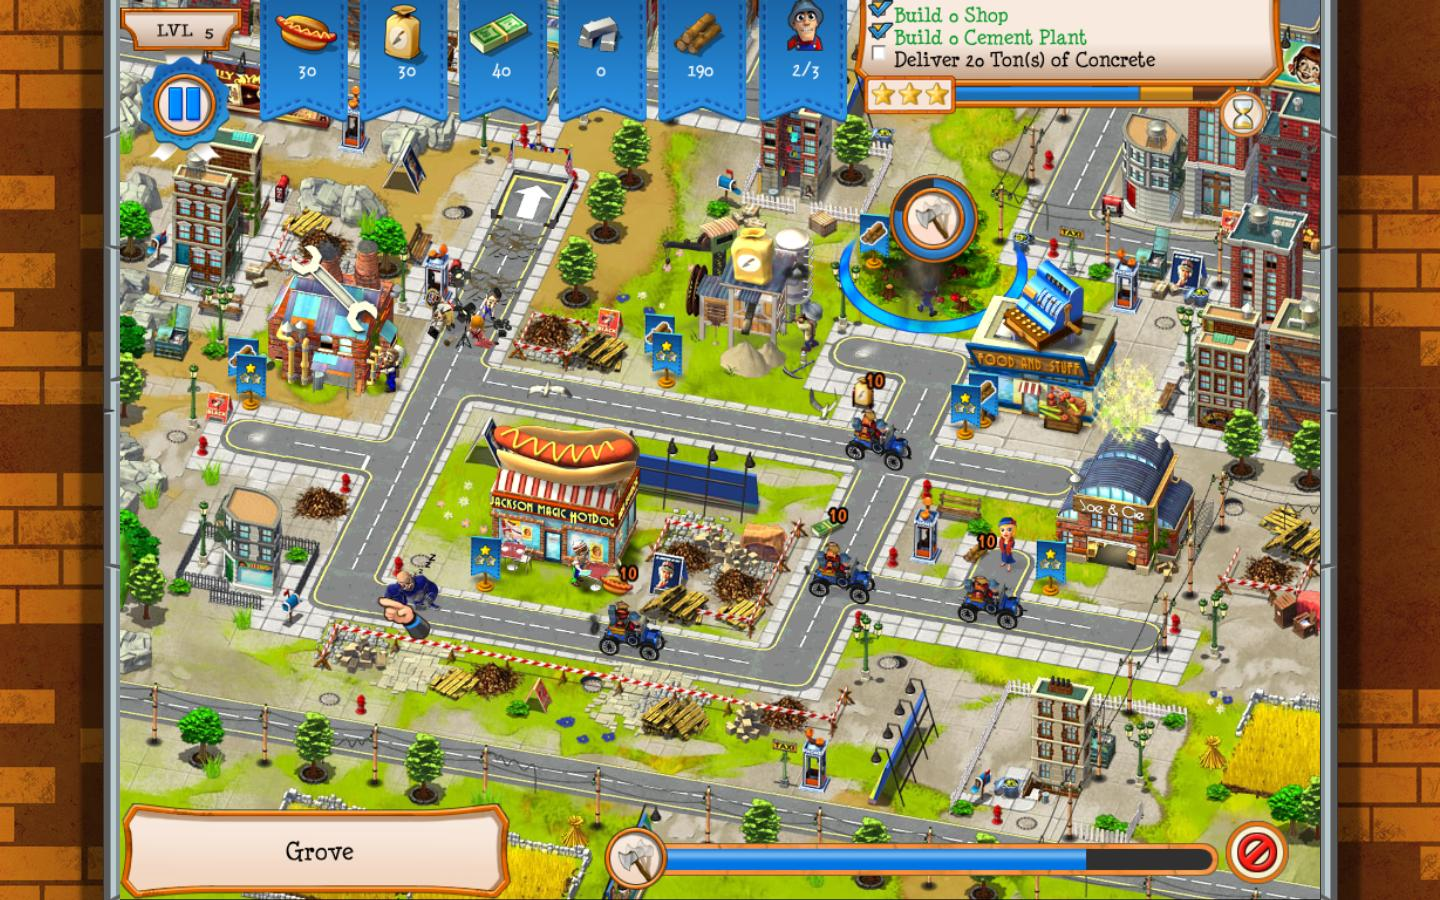 monument builders empire state building download and play on pc